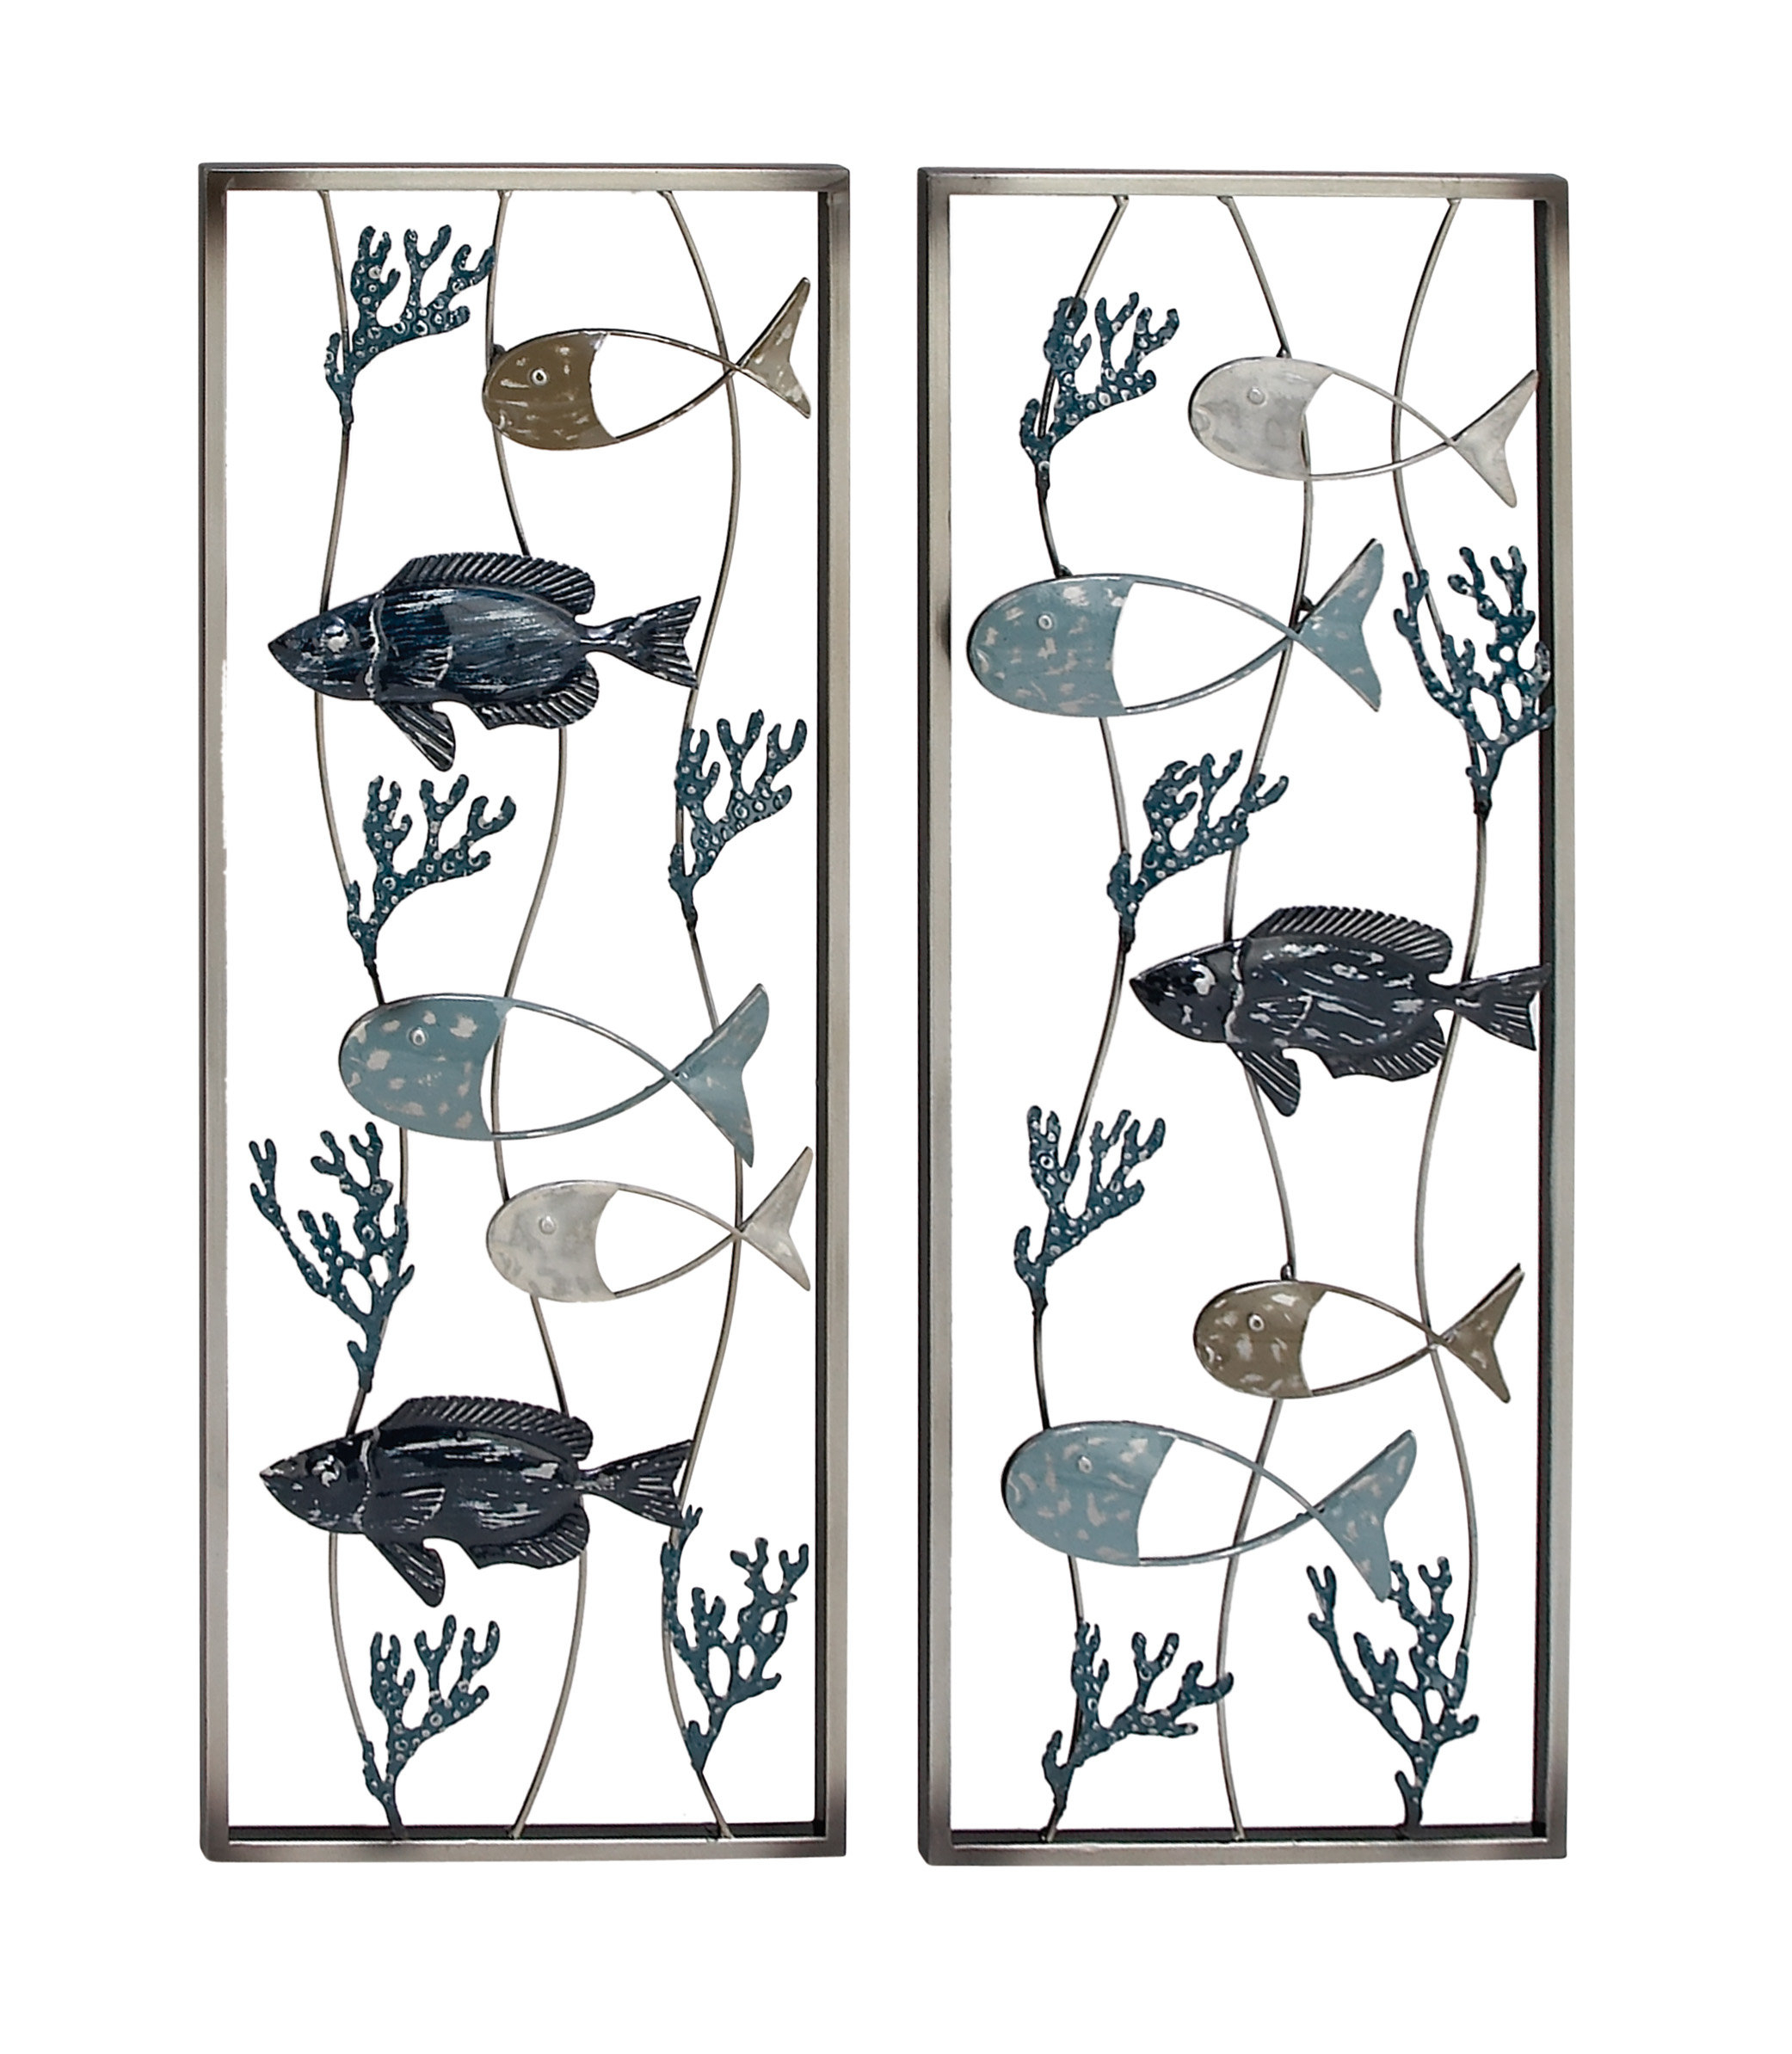 2 Piece Wall Decor Set | Wayfair For 2 Piece Starburst Wall Decor Sets (Gallery 4 of 30)